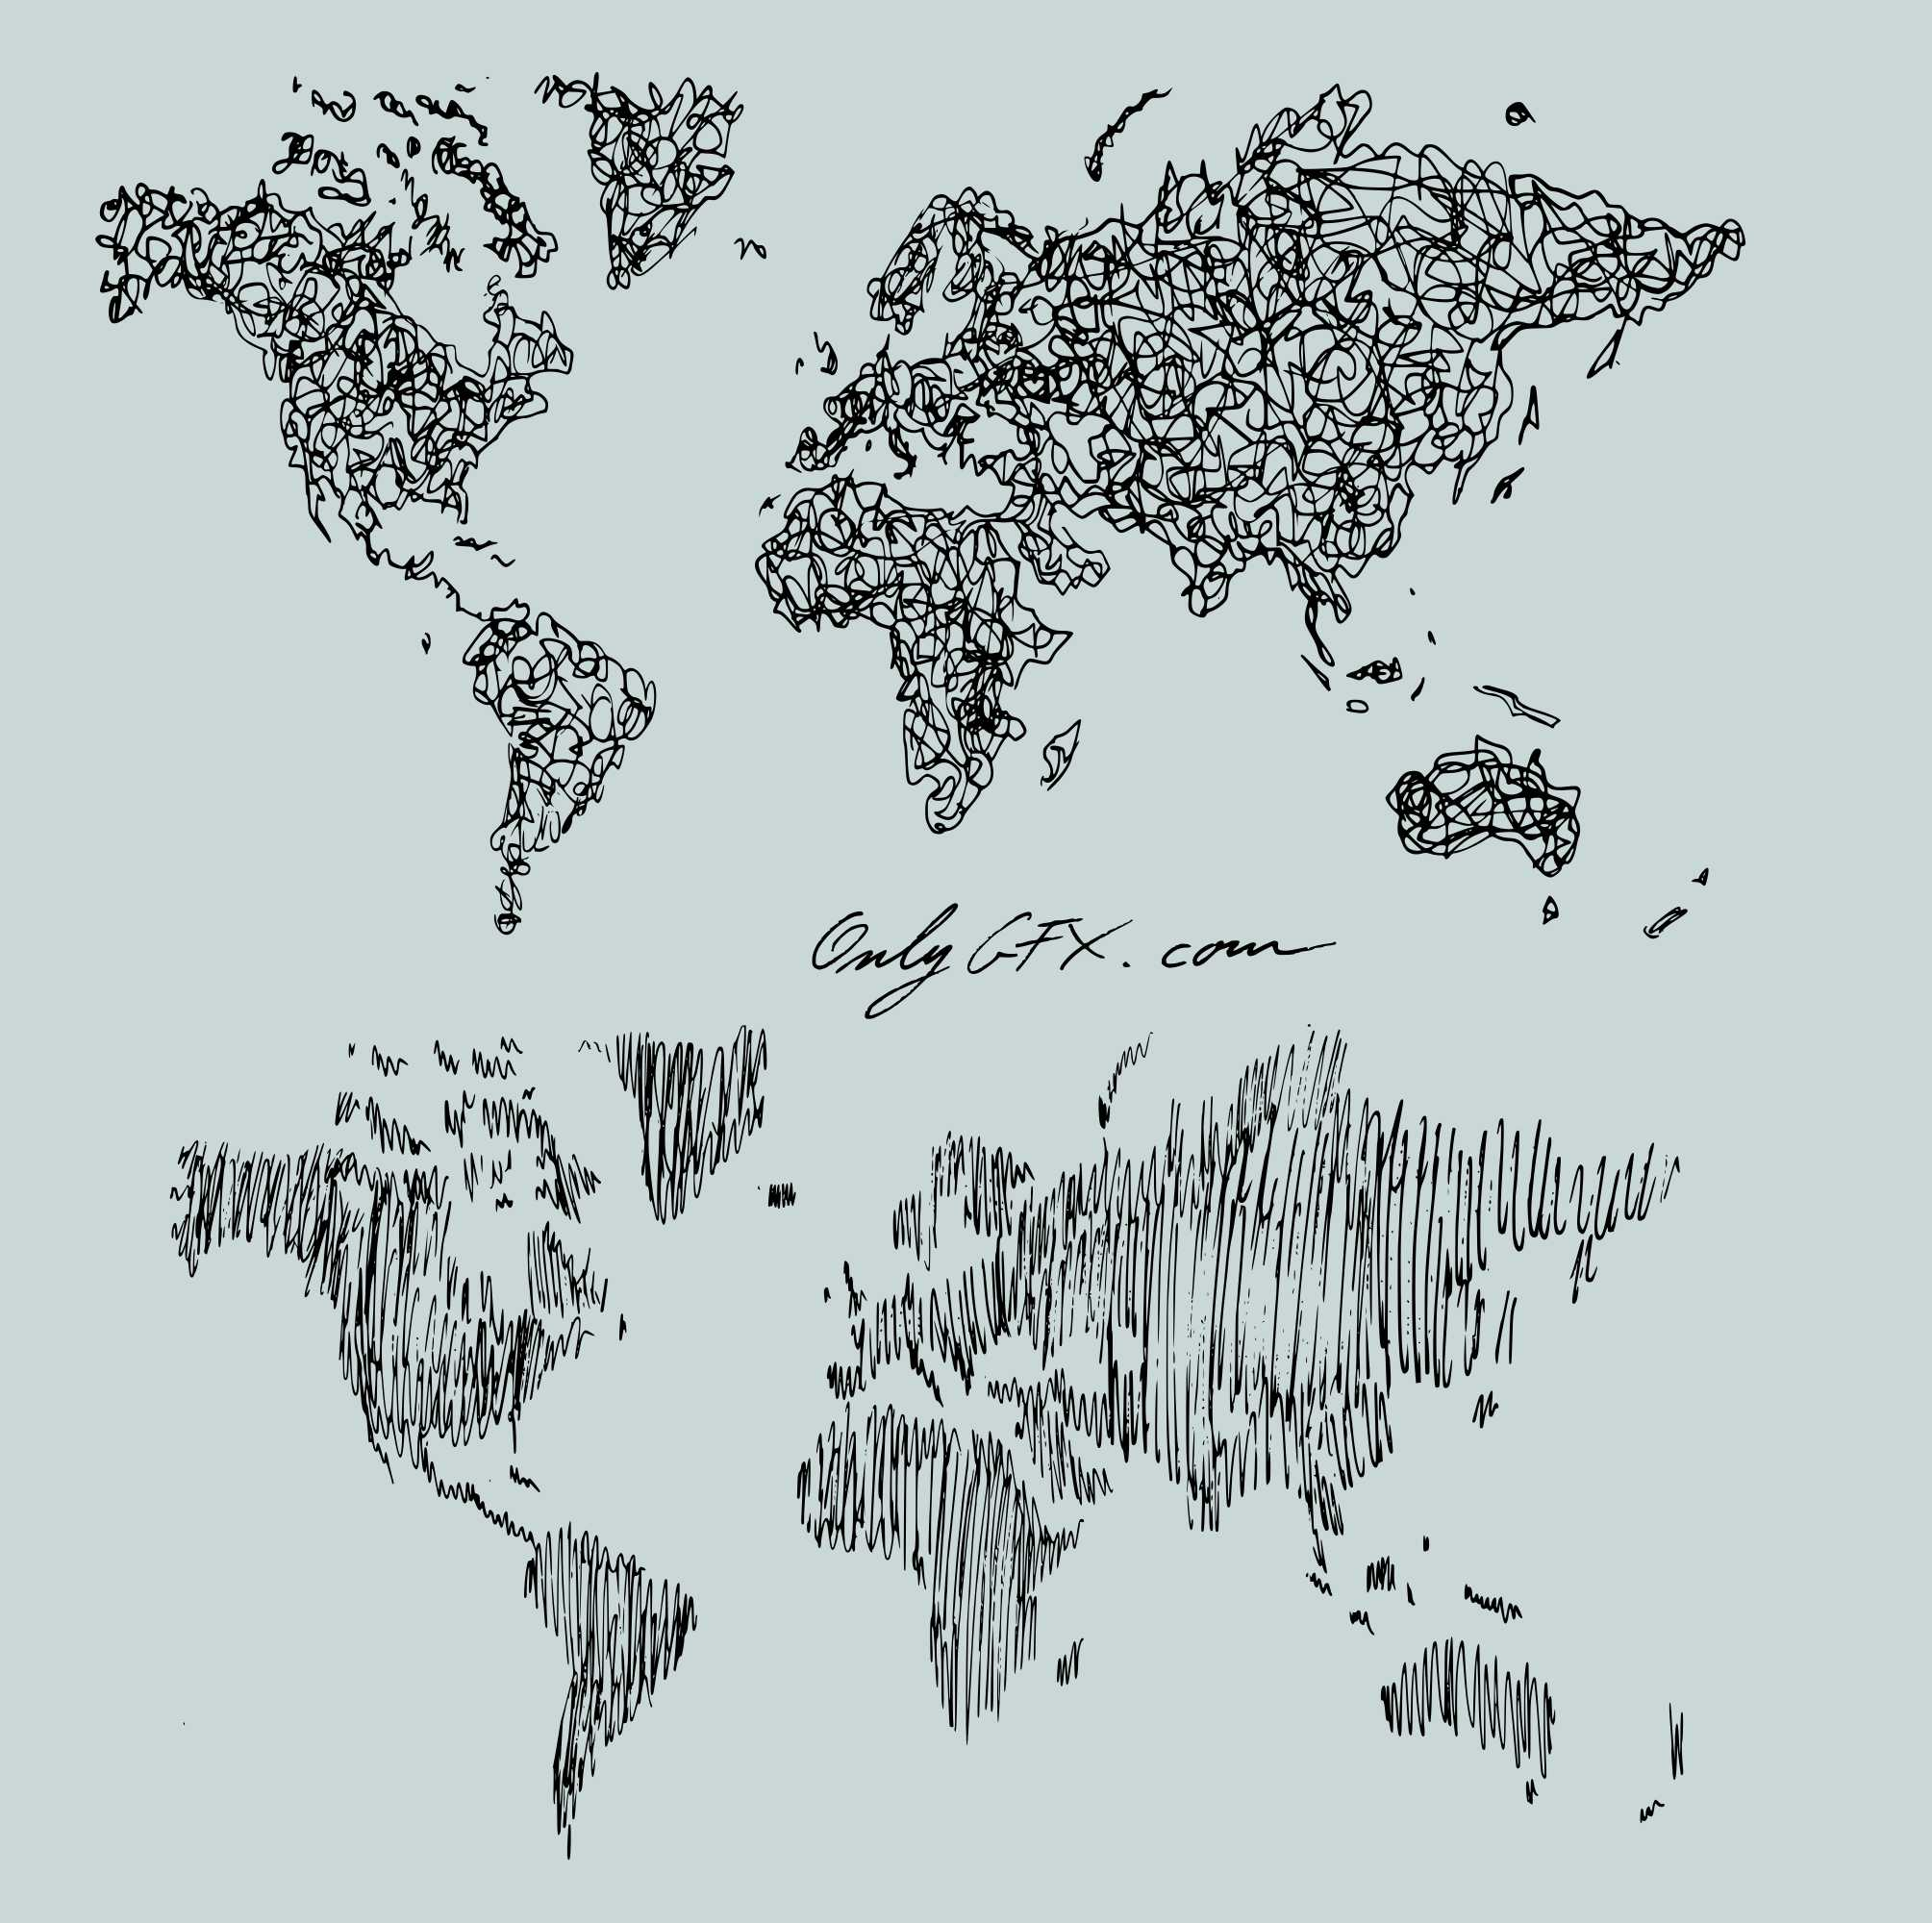 world-map-scrible-doodle-drawing-cover.jpg